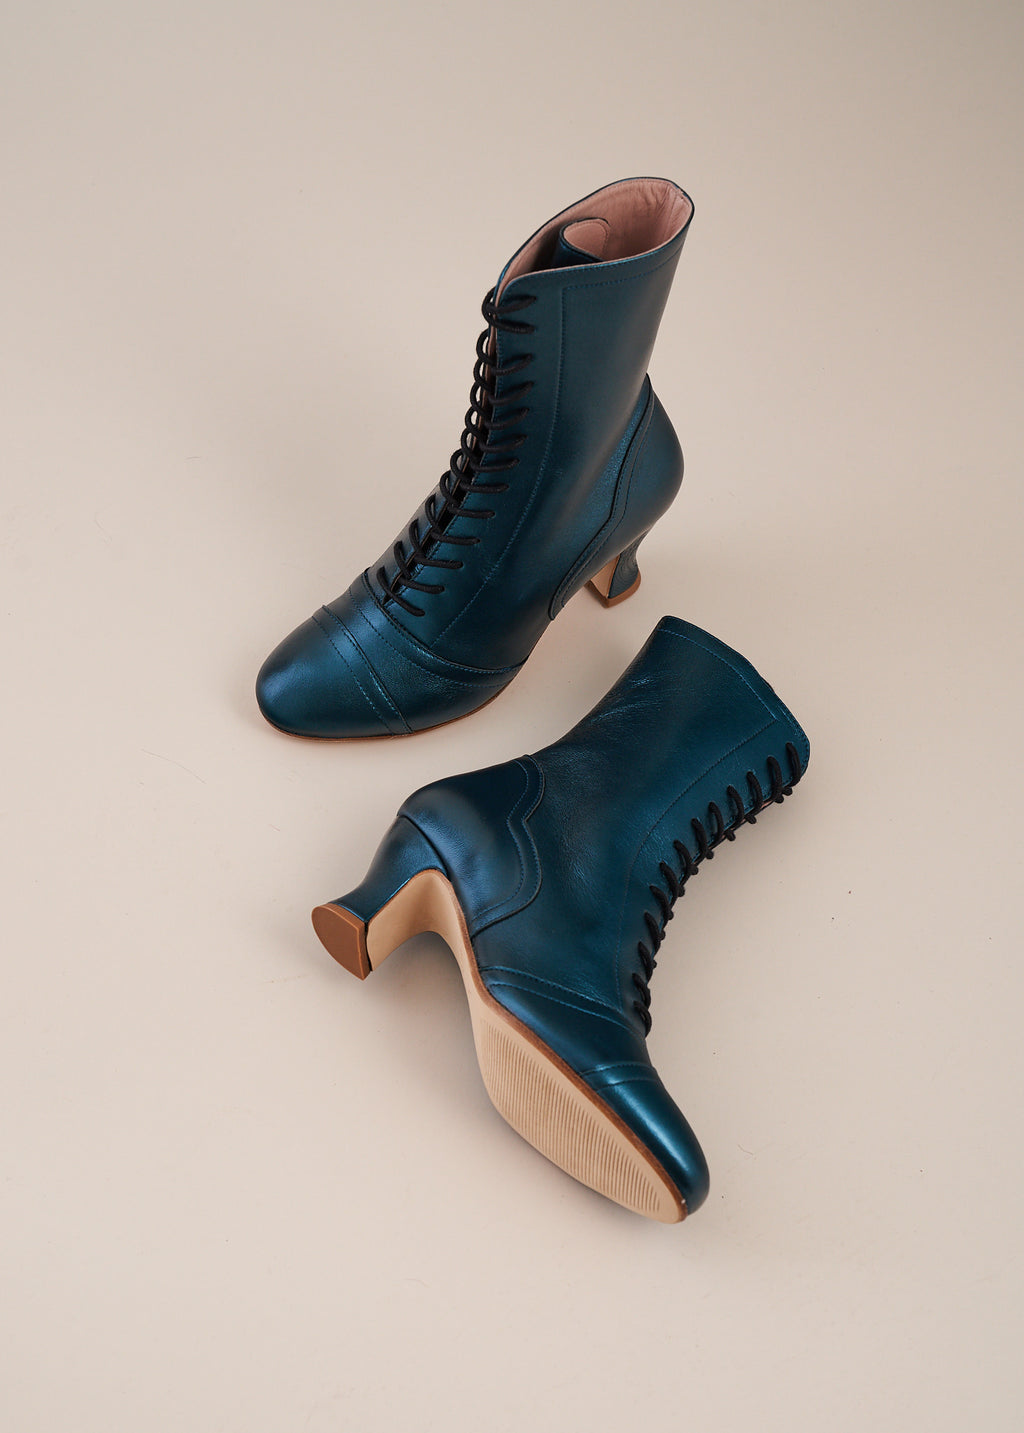 Frida Luxe Teal Metallic Leather Lace up Boots- LAST PAIR SIZE 39!